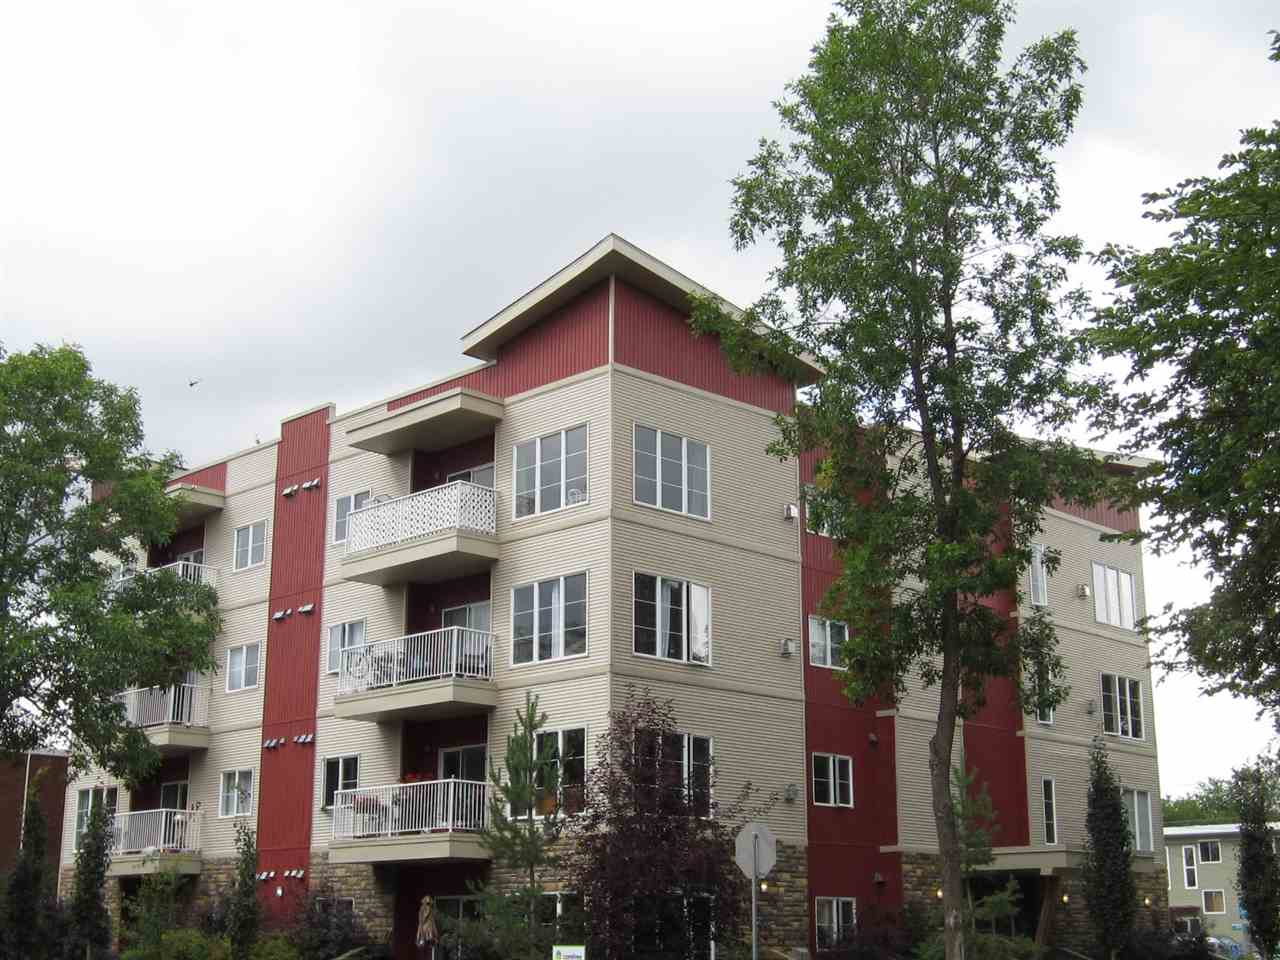 Main Photo: 403 11107 108 Avenue in Edmonton: Zone 08 Condo for sale : MLS® # E4096163